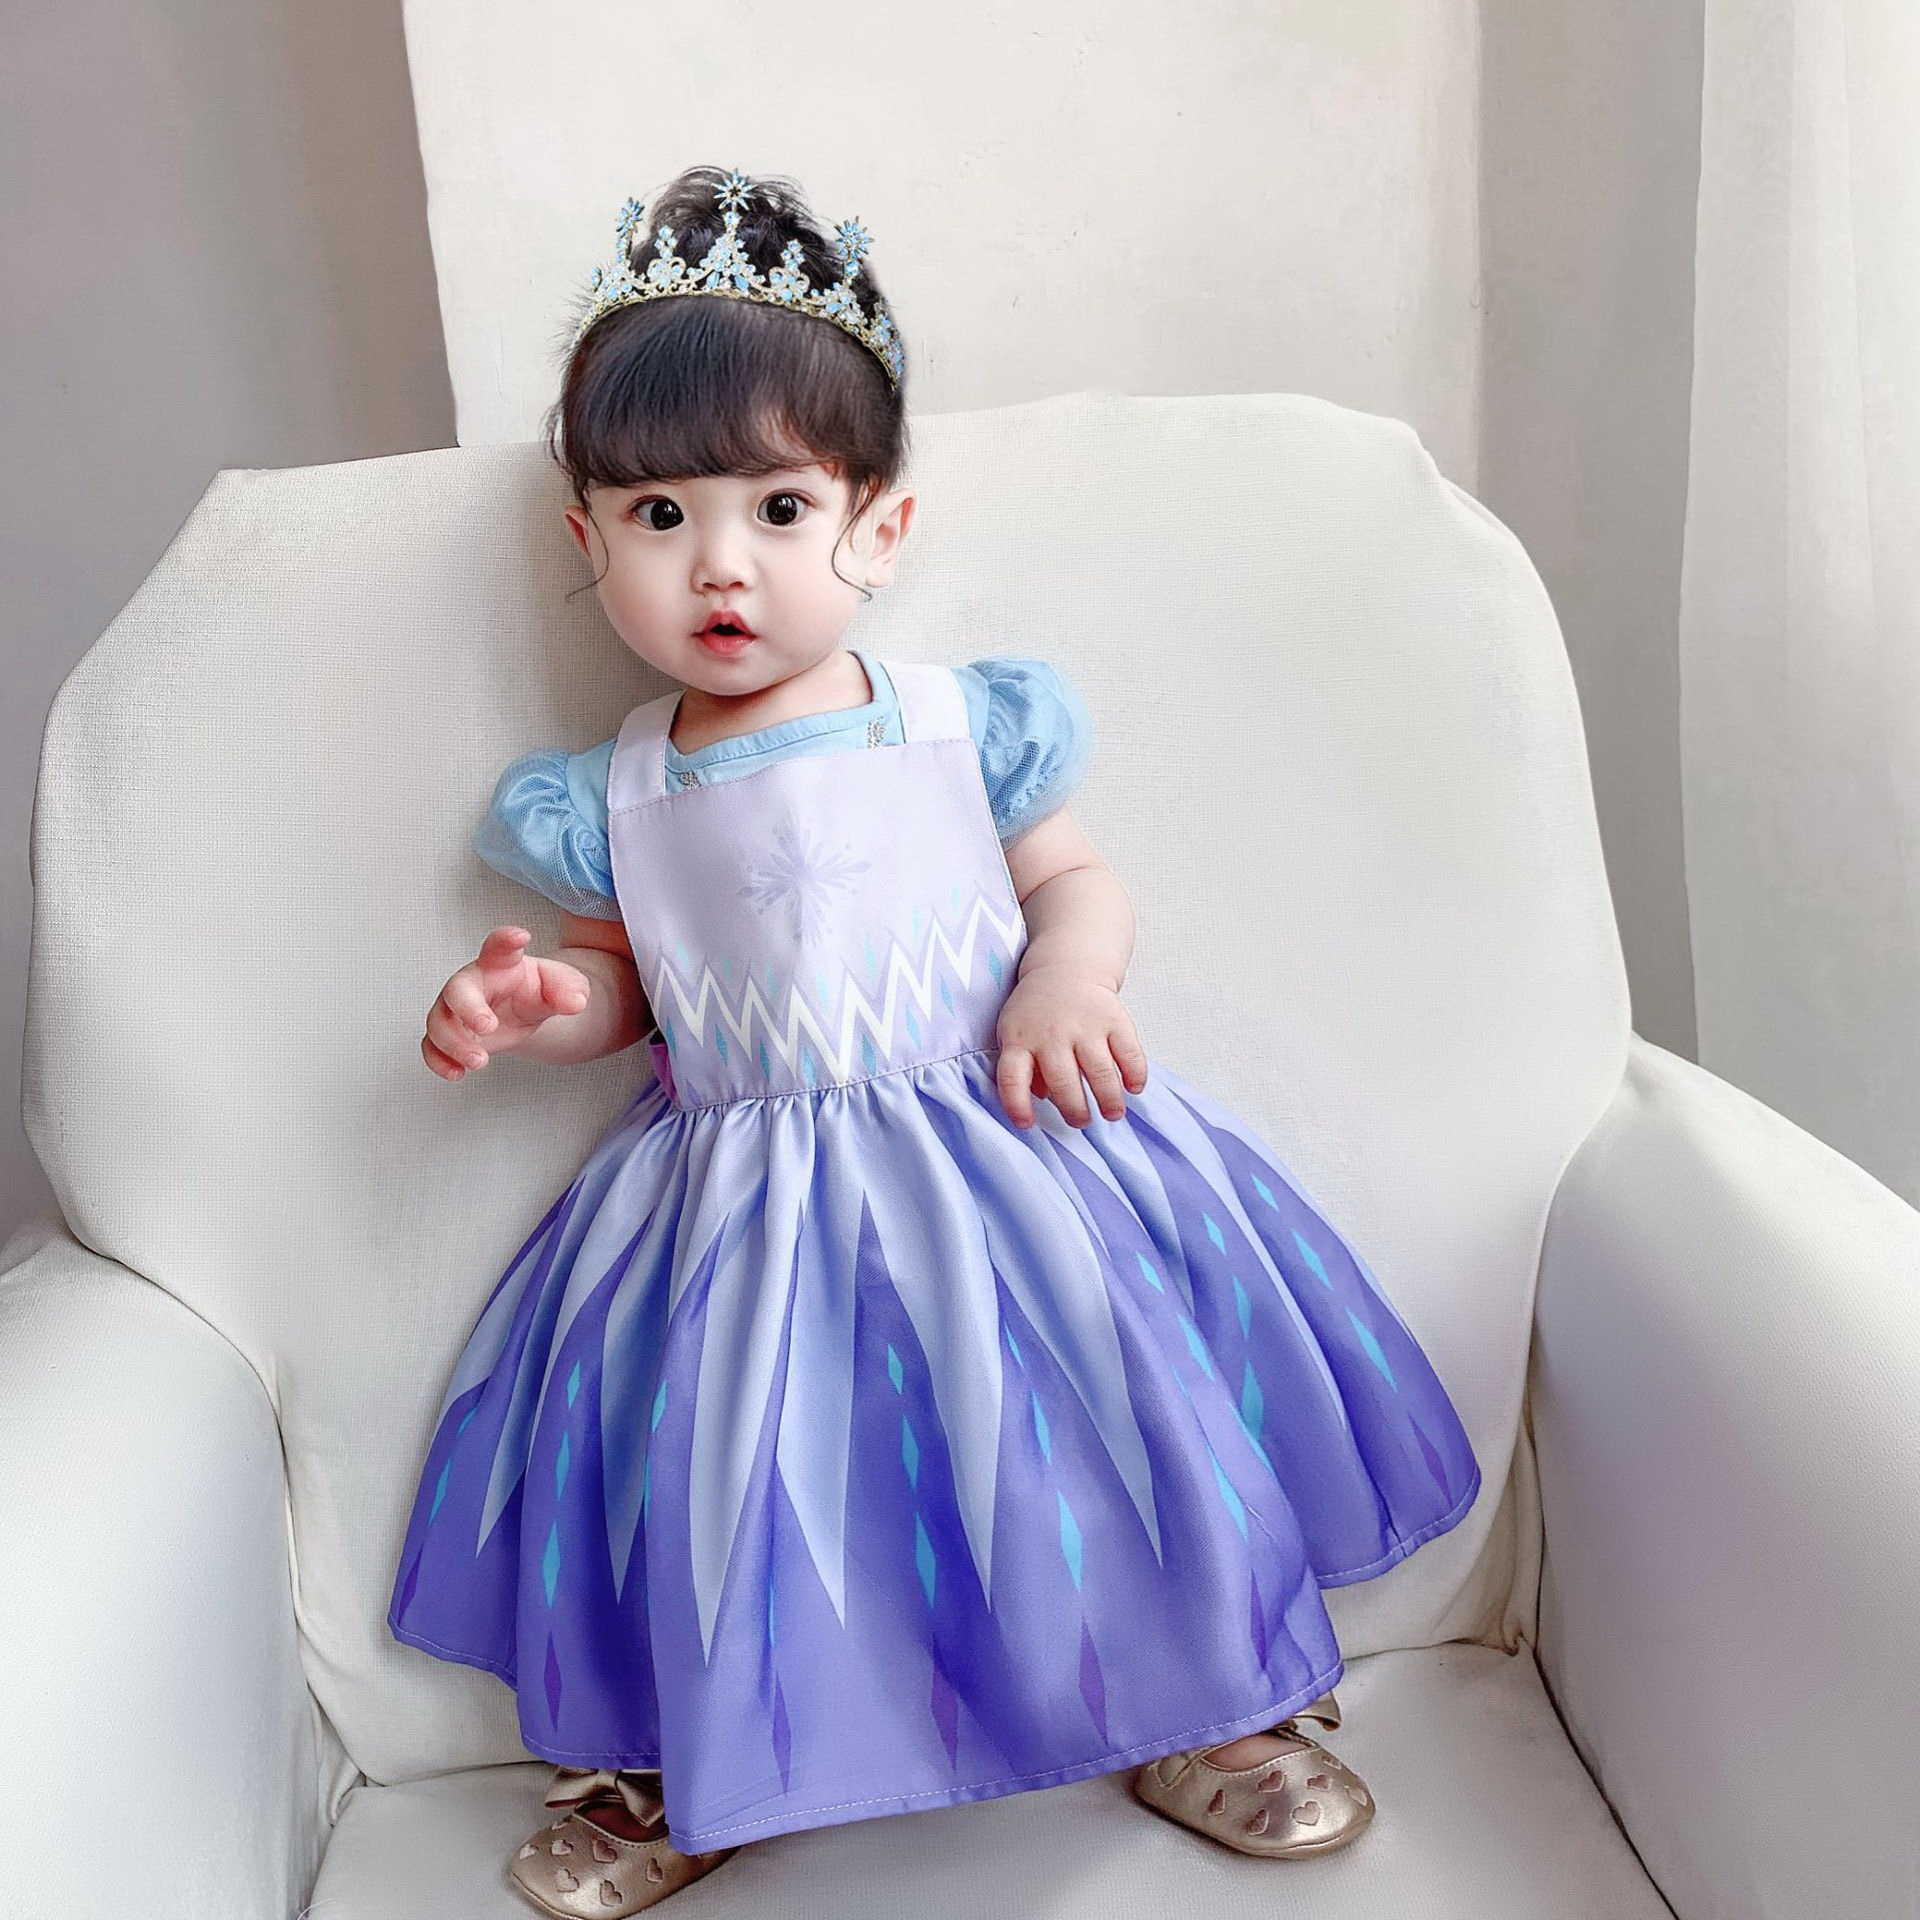 In Children Waterproof Apron Dress Girls Cartoon Princess Drawing Coverall overall 2-7Y E1119 210610